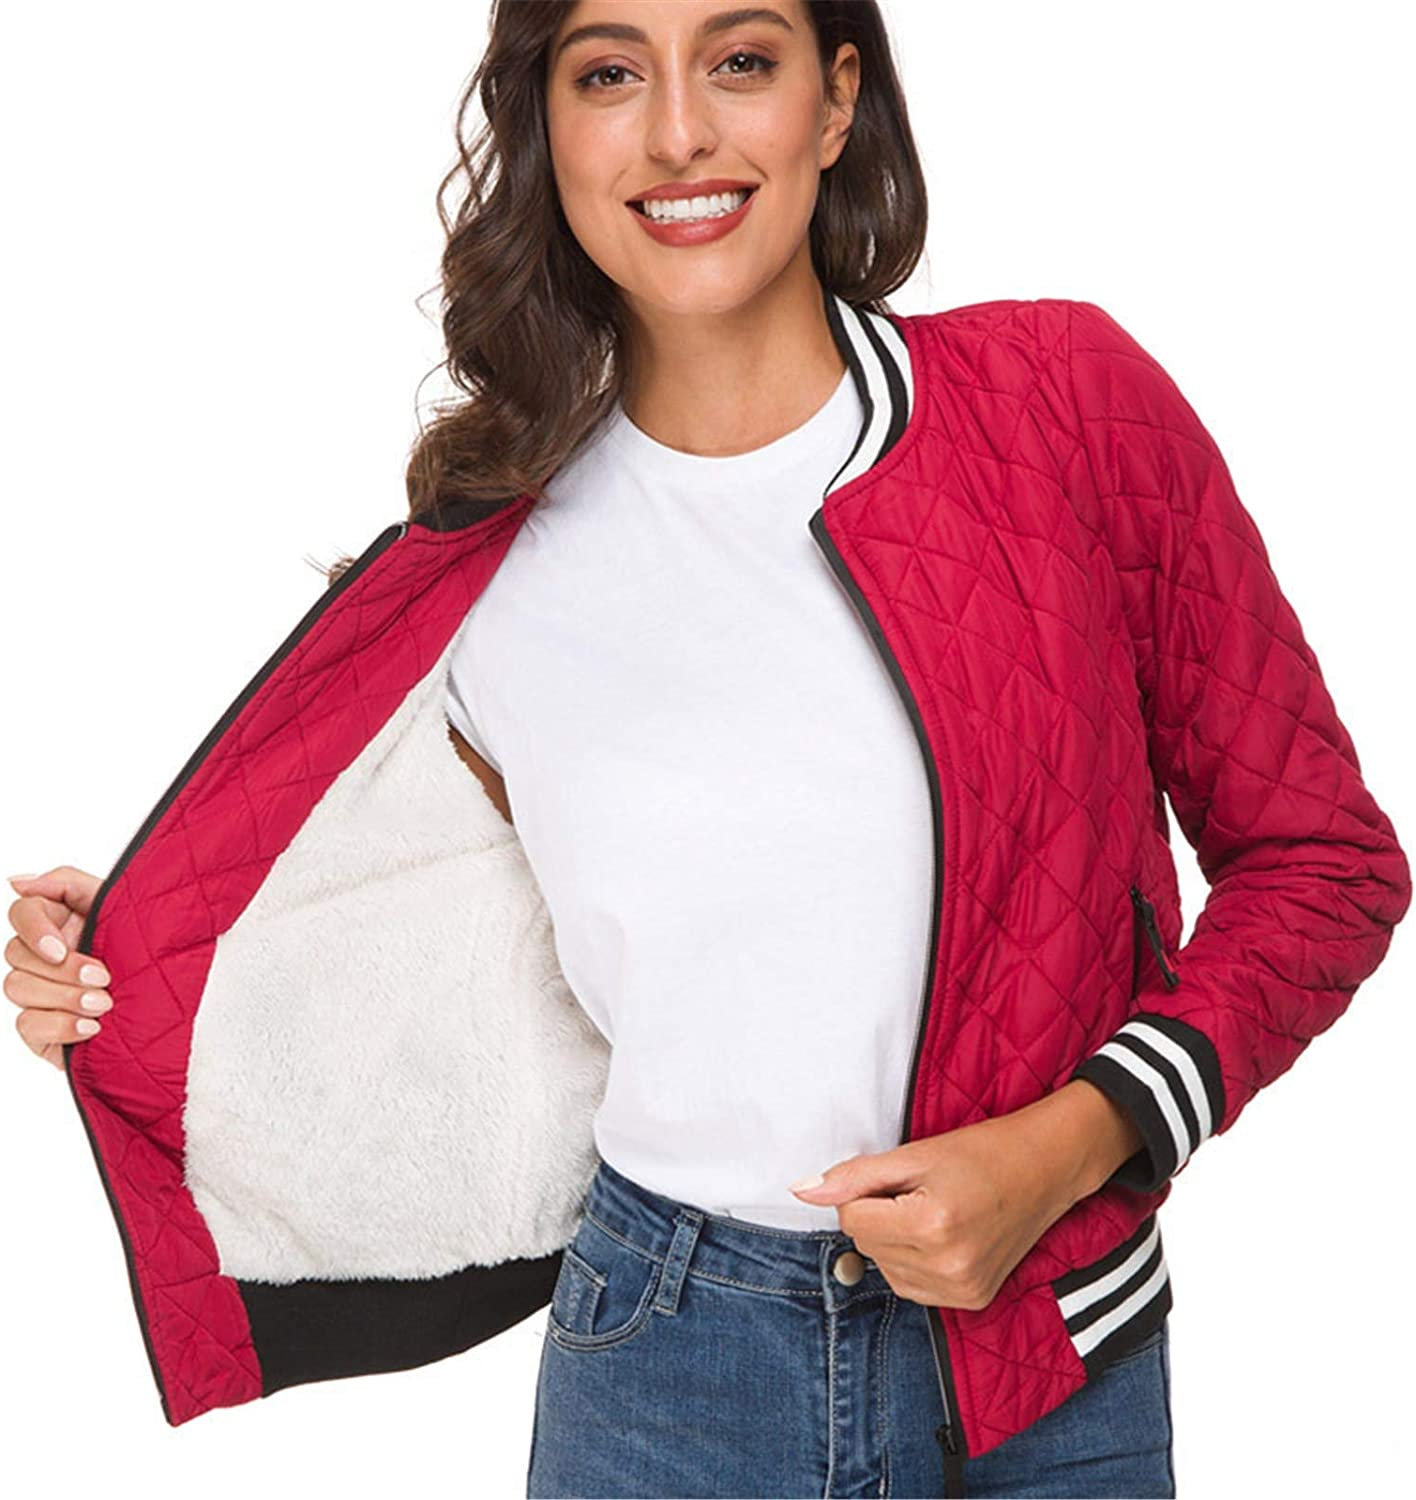 Long Beach Mall CNBPLS Women's Solid Lamb Cashmere Cropped Sl Oklahoma City Mall Bomber Jacket